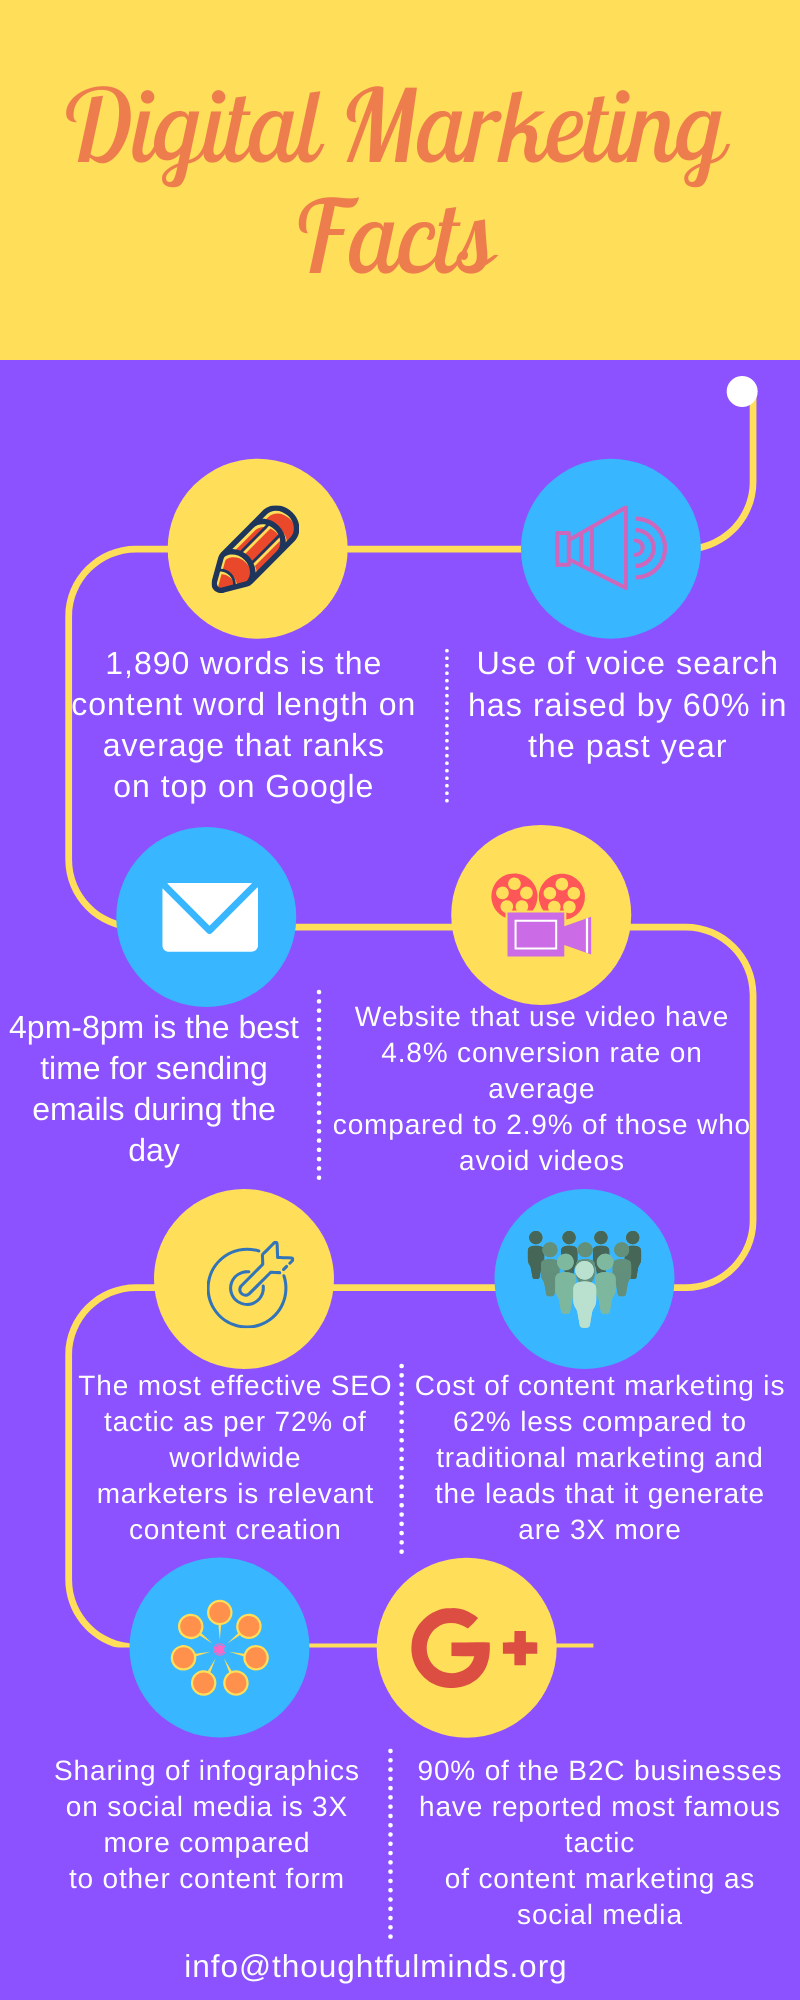 digital marketing facts infographic